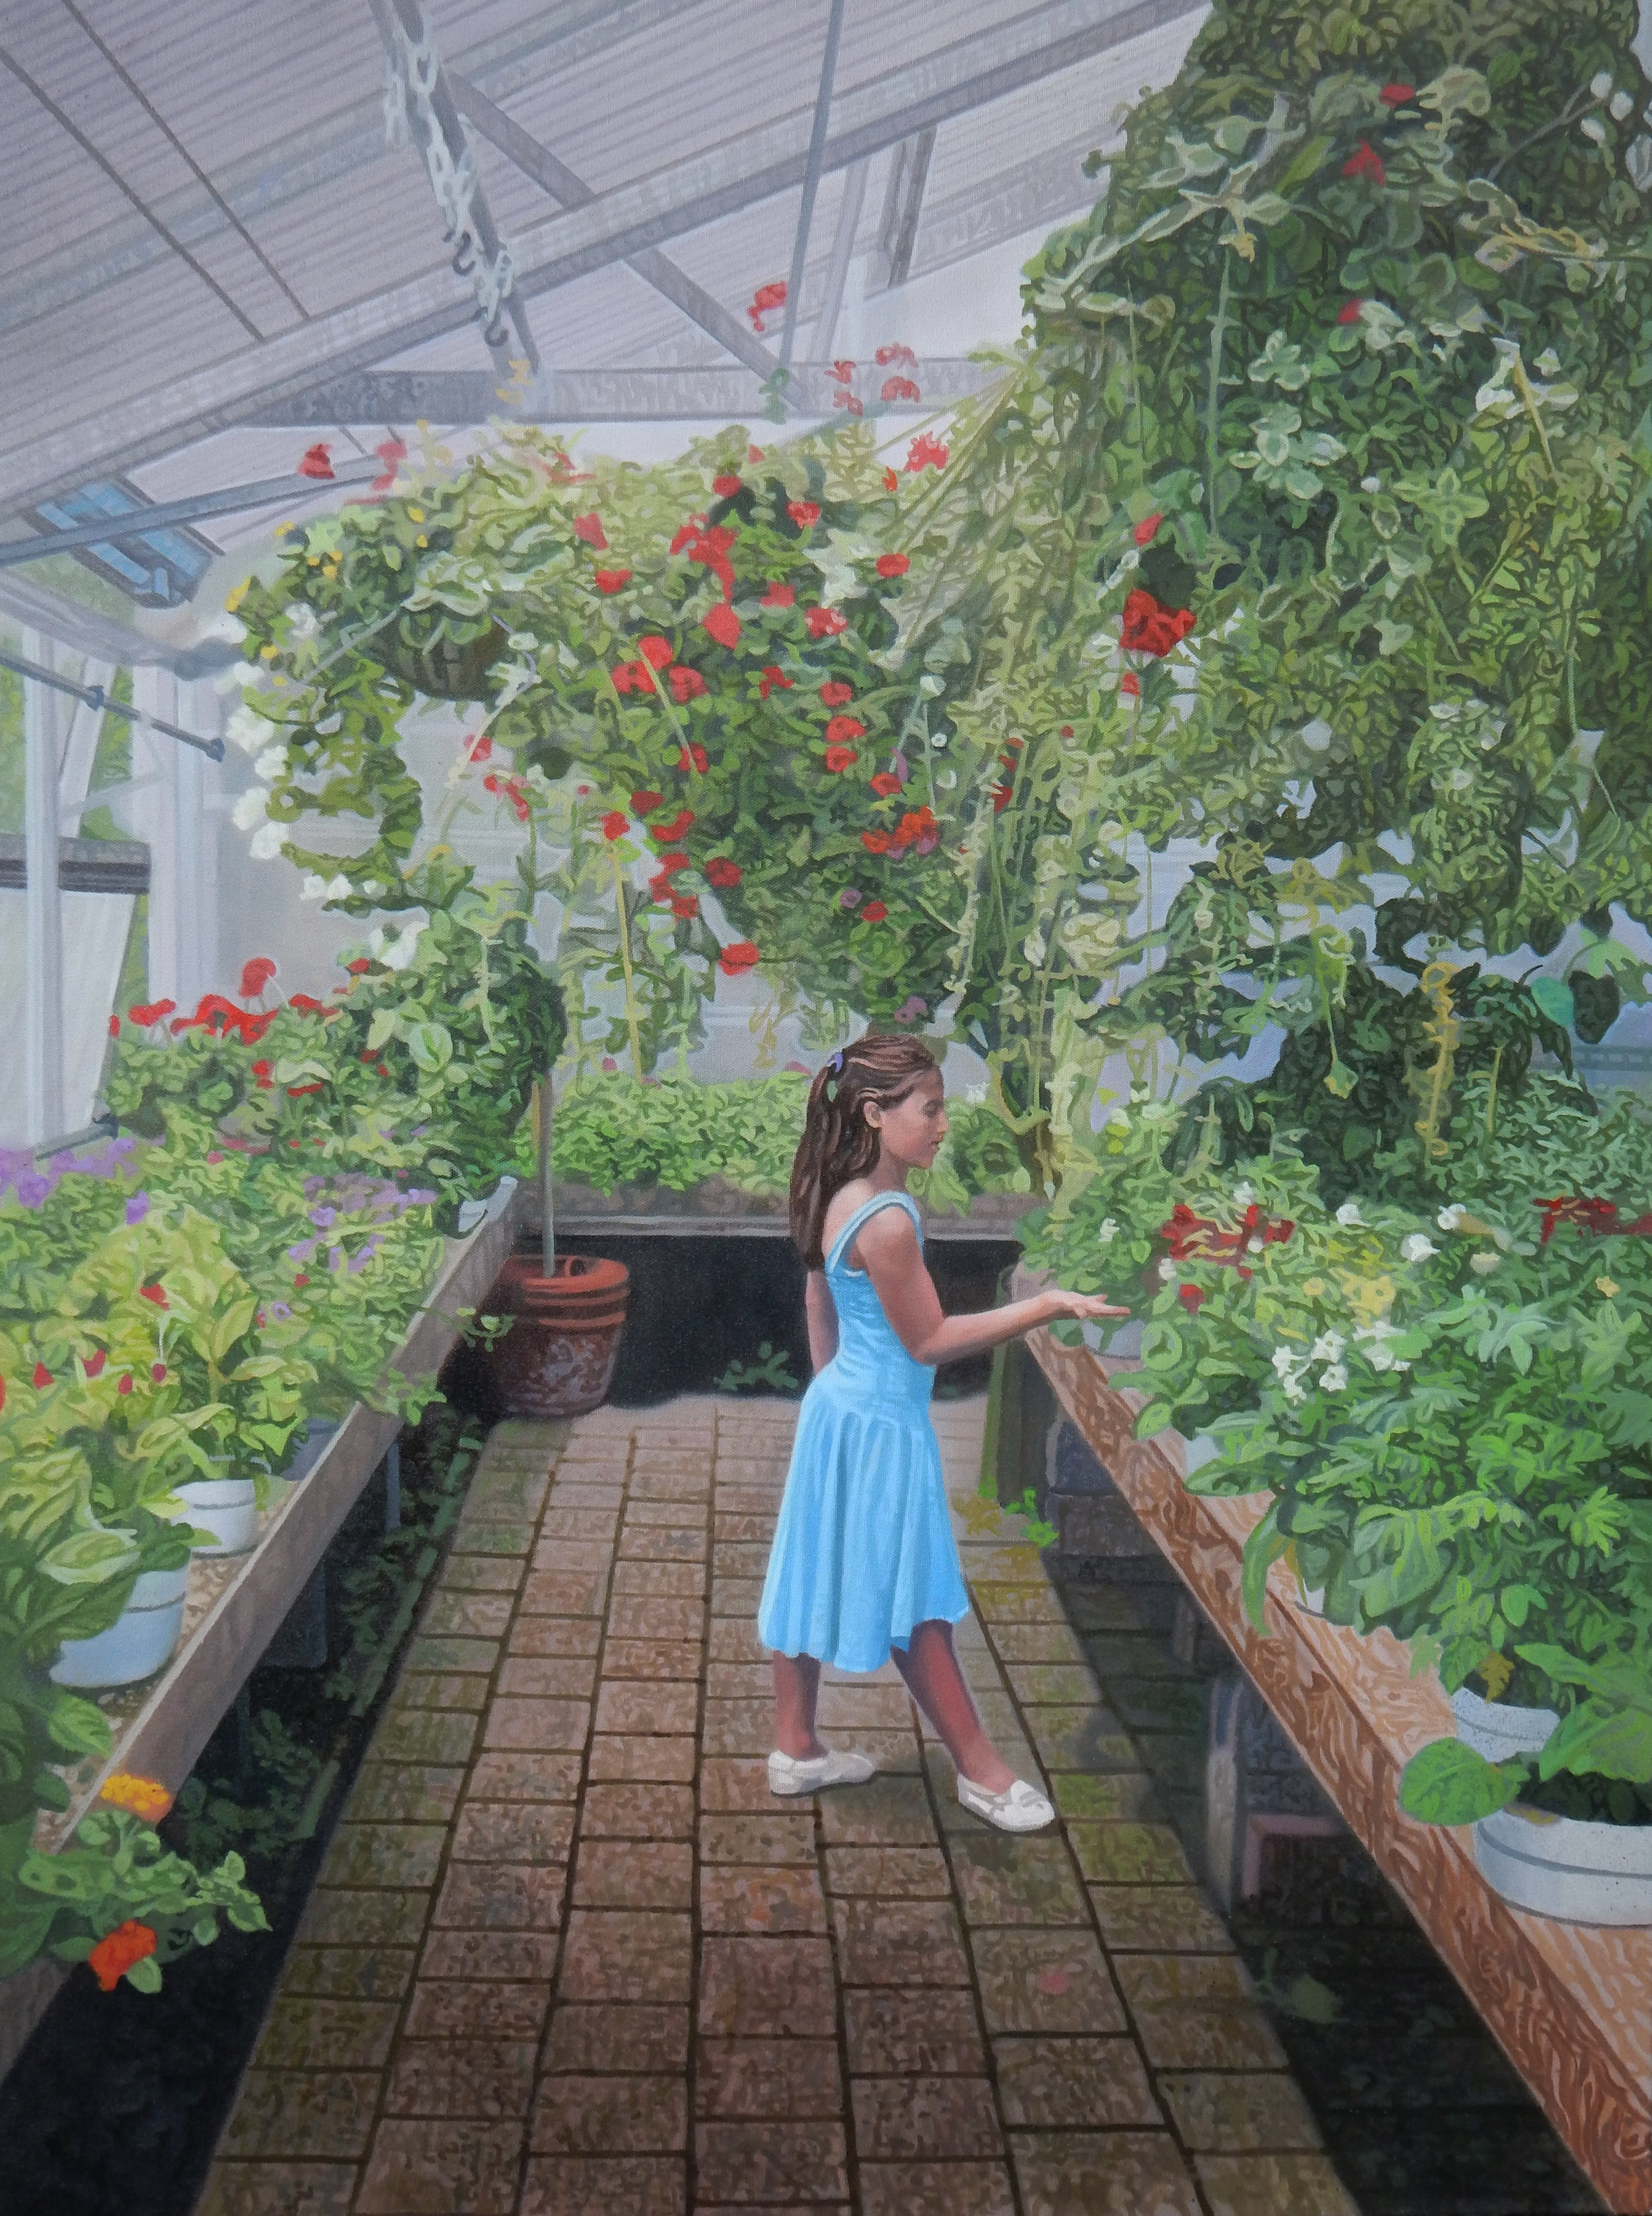 "Eve in the Garden , 2018, Oil on Canvas, 30"" x 40"".  A girl-child in blue stands in a greenhouse surrounded by hundreds of leaves, and she reaches out to touch one."